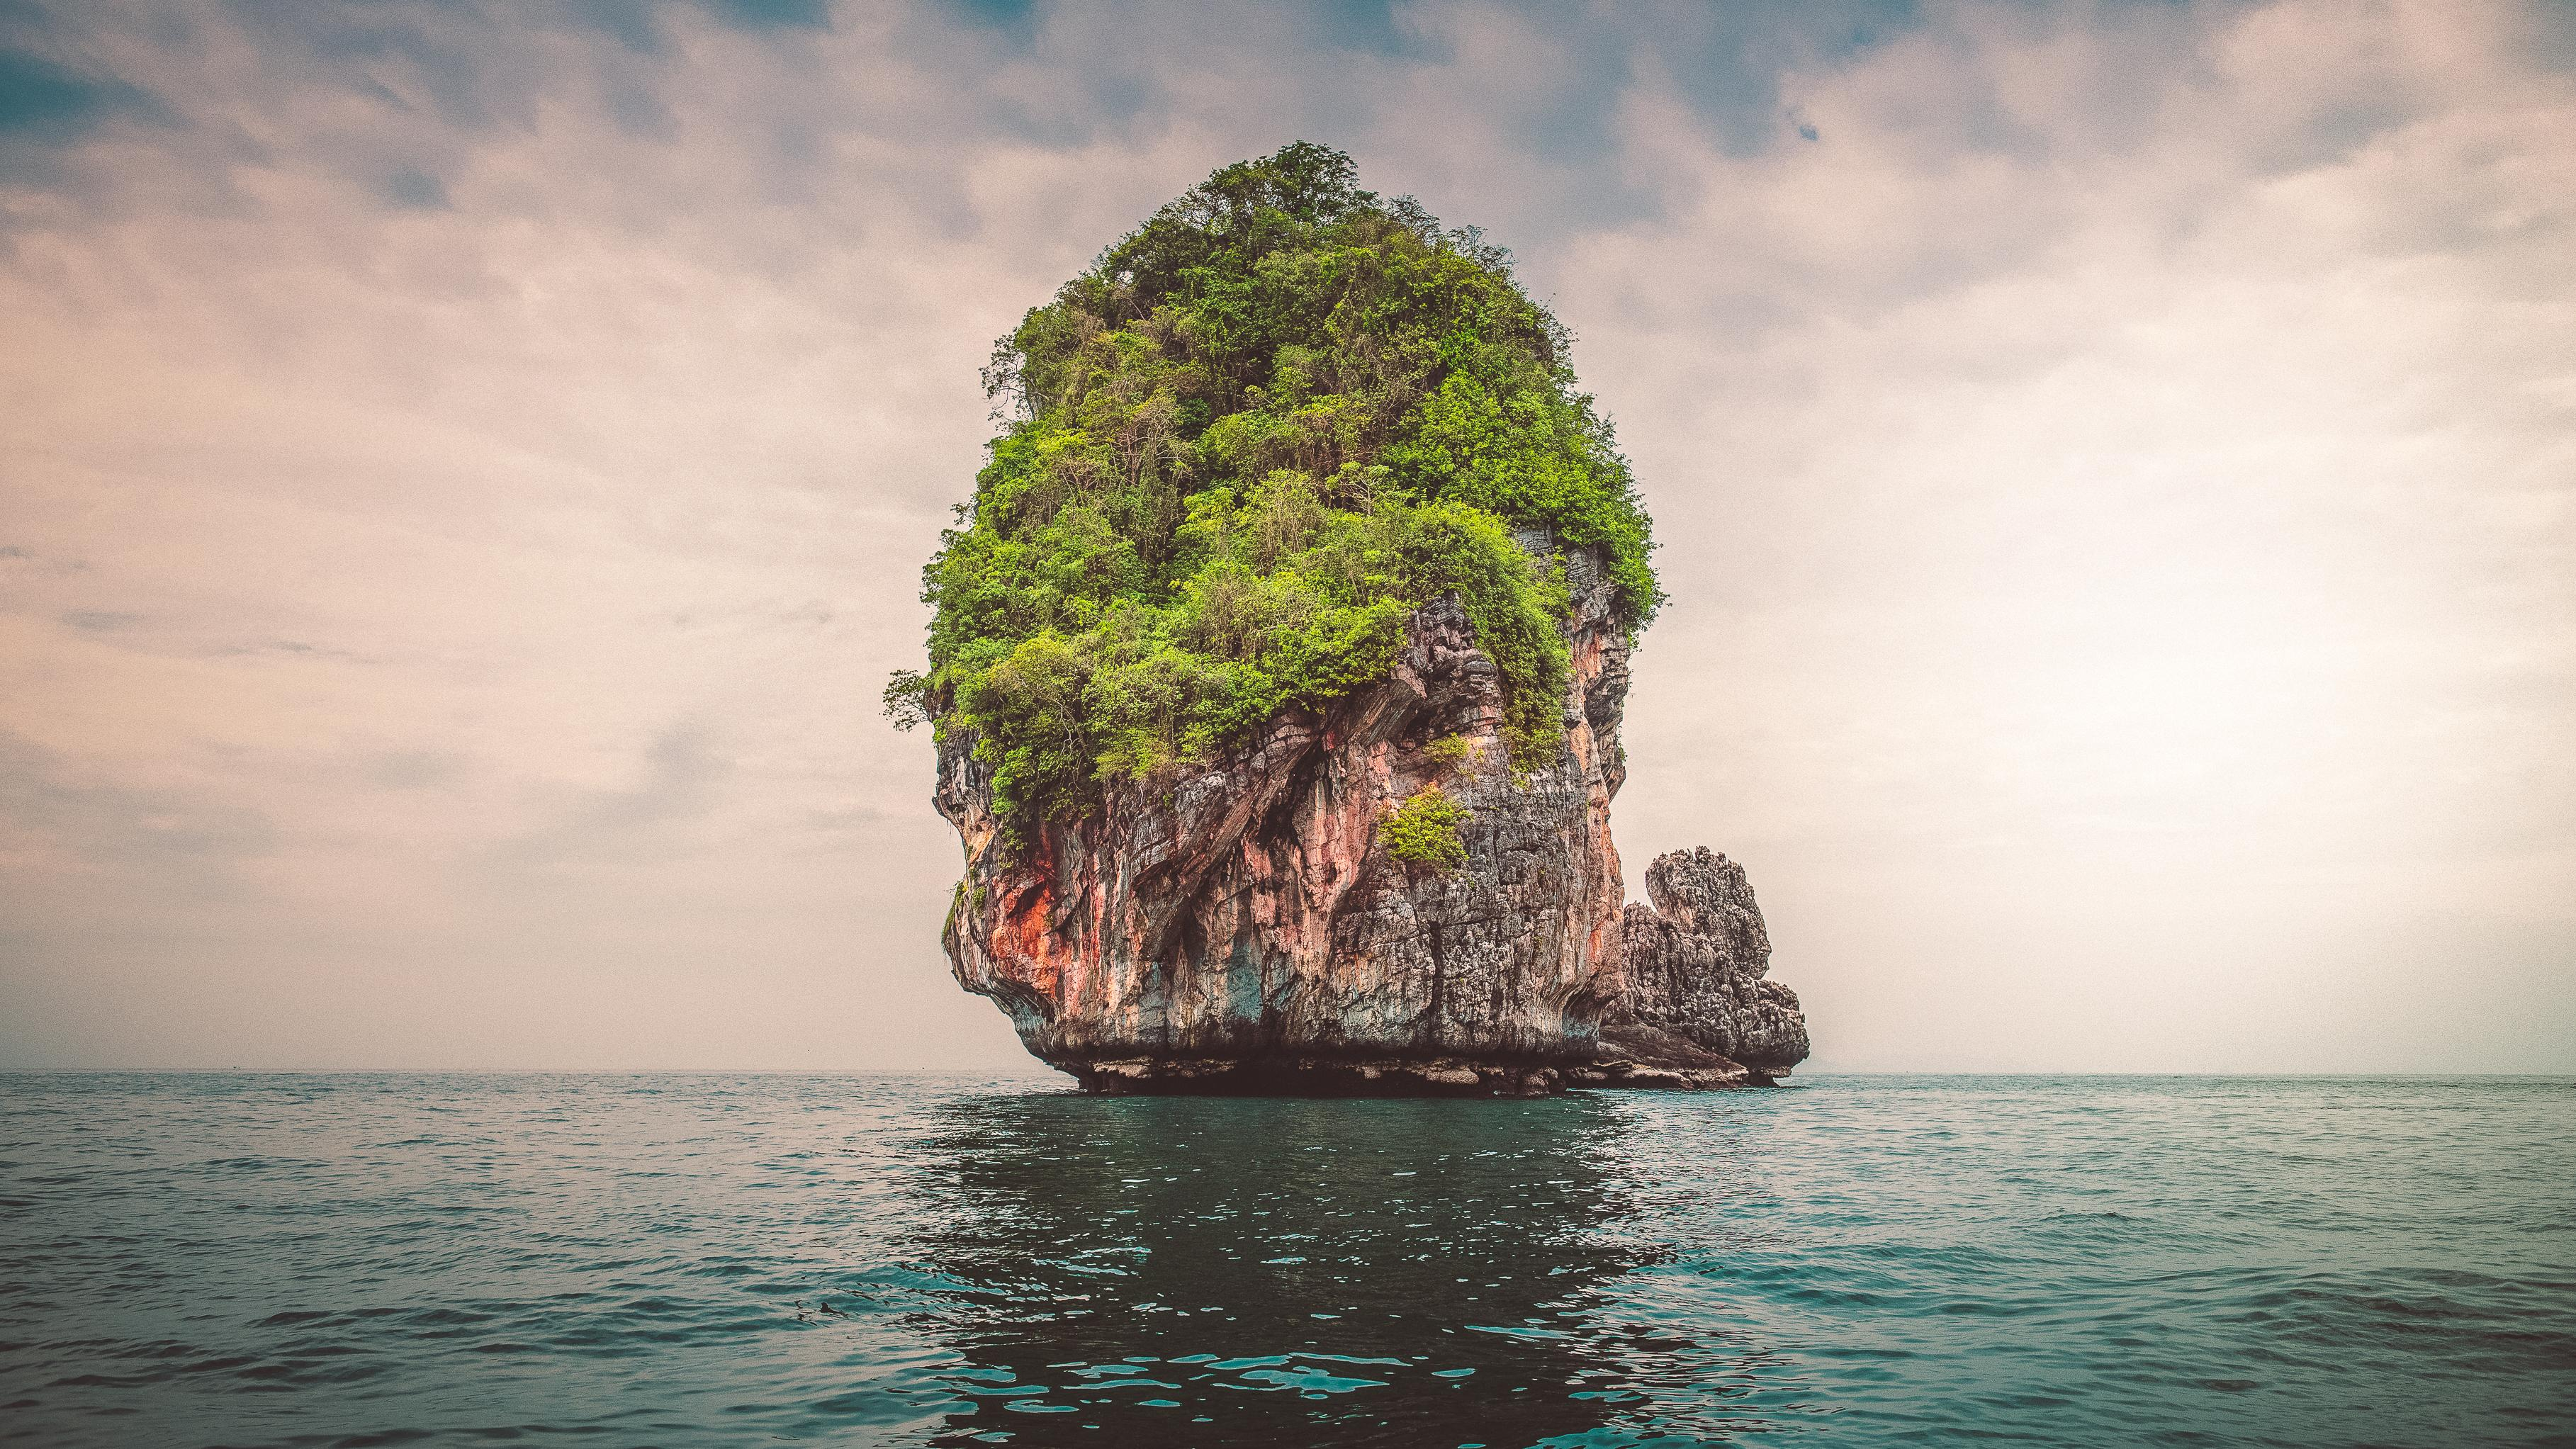 Thailand 4k Wallpapers For Your Desktop Or Mobile Screen